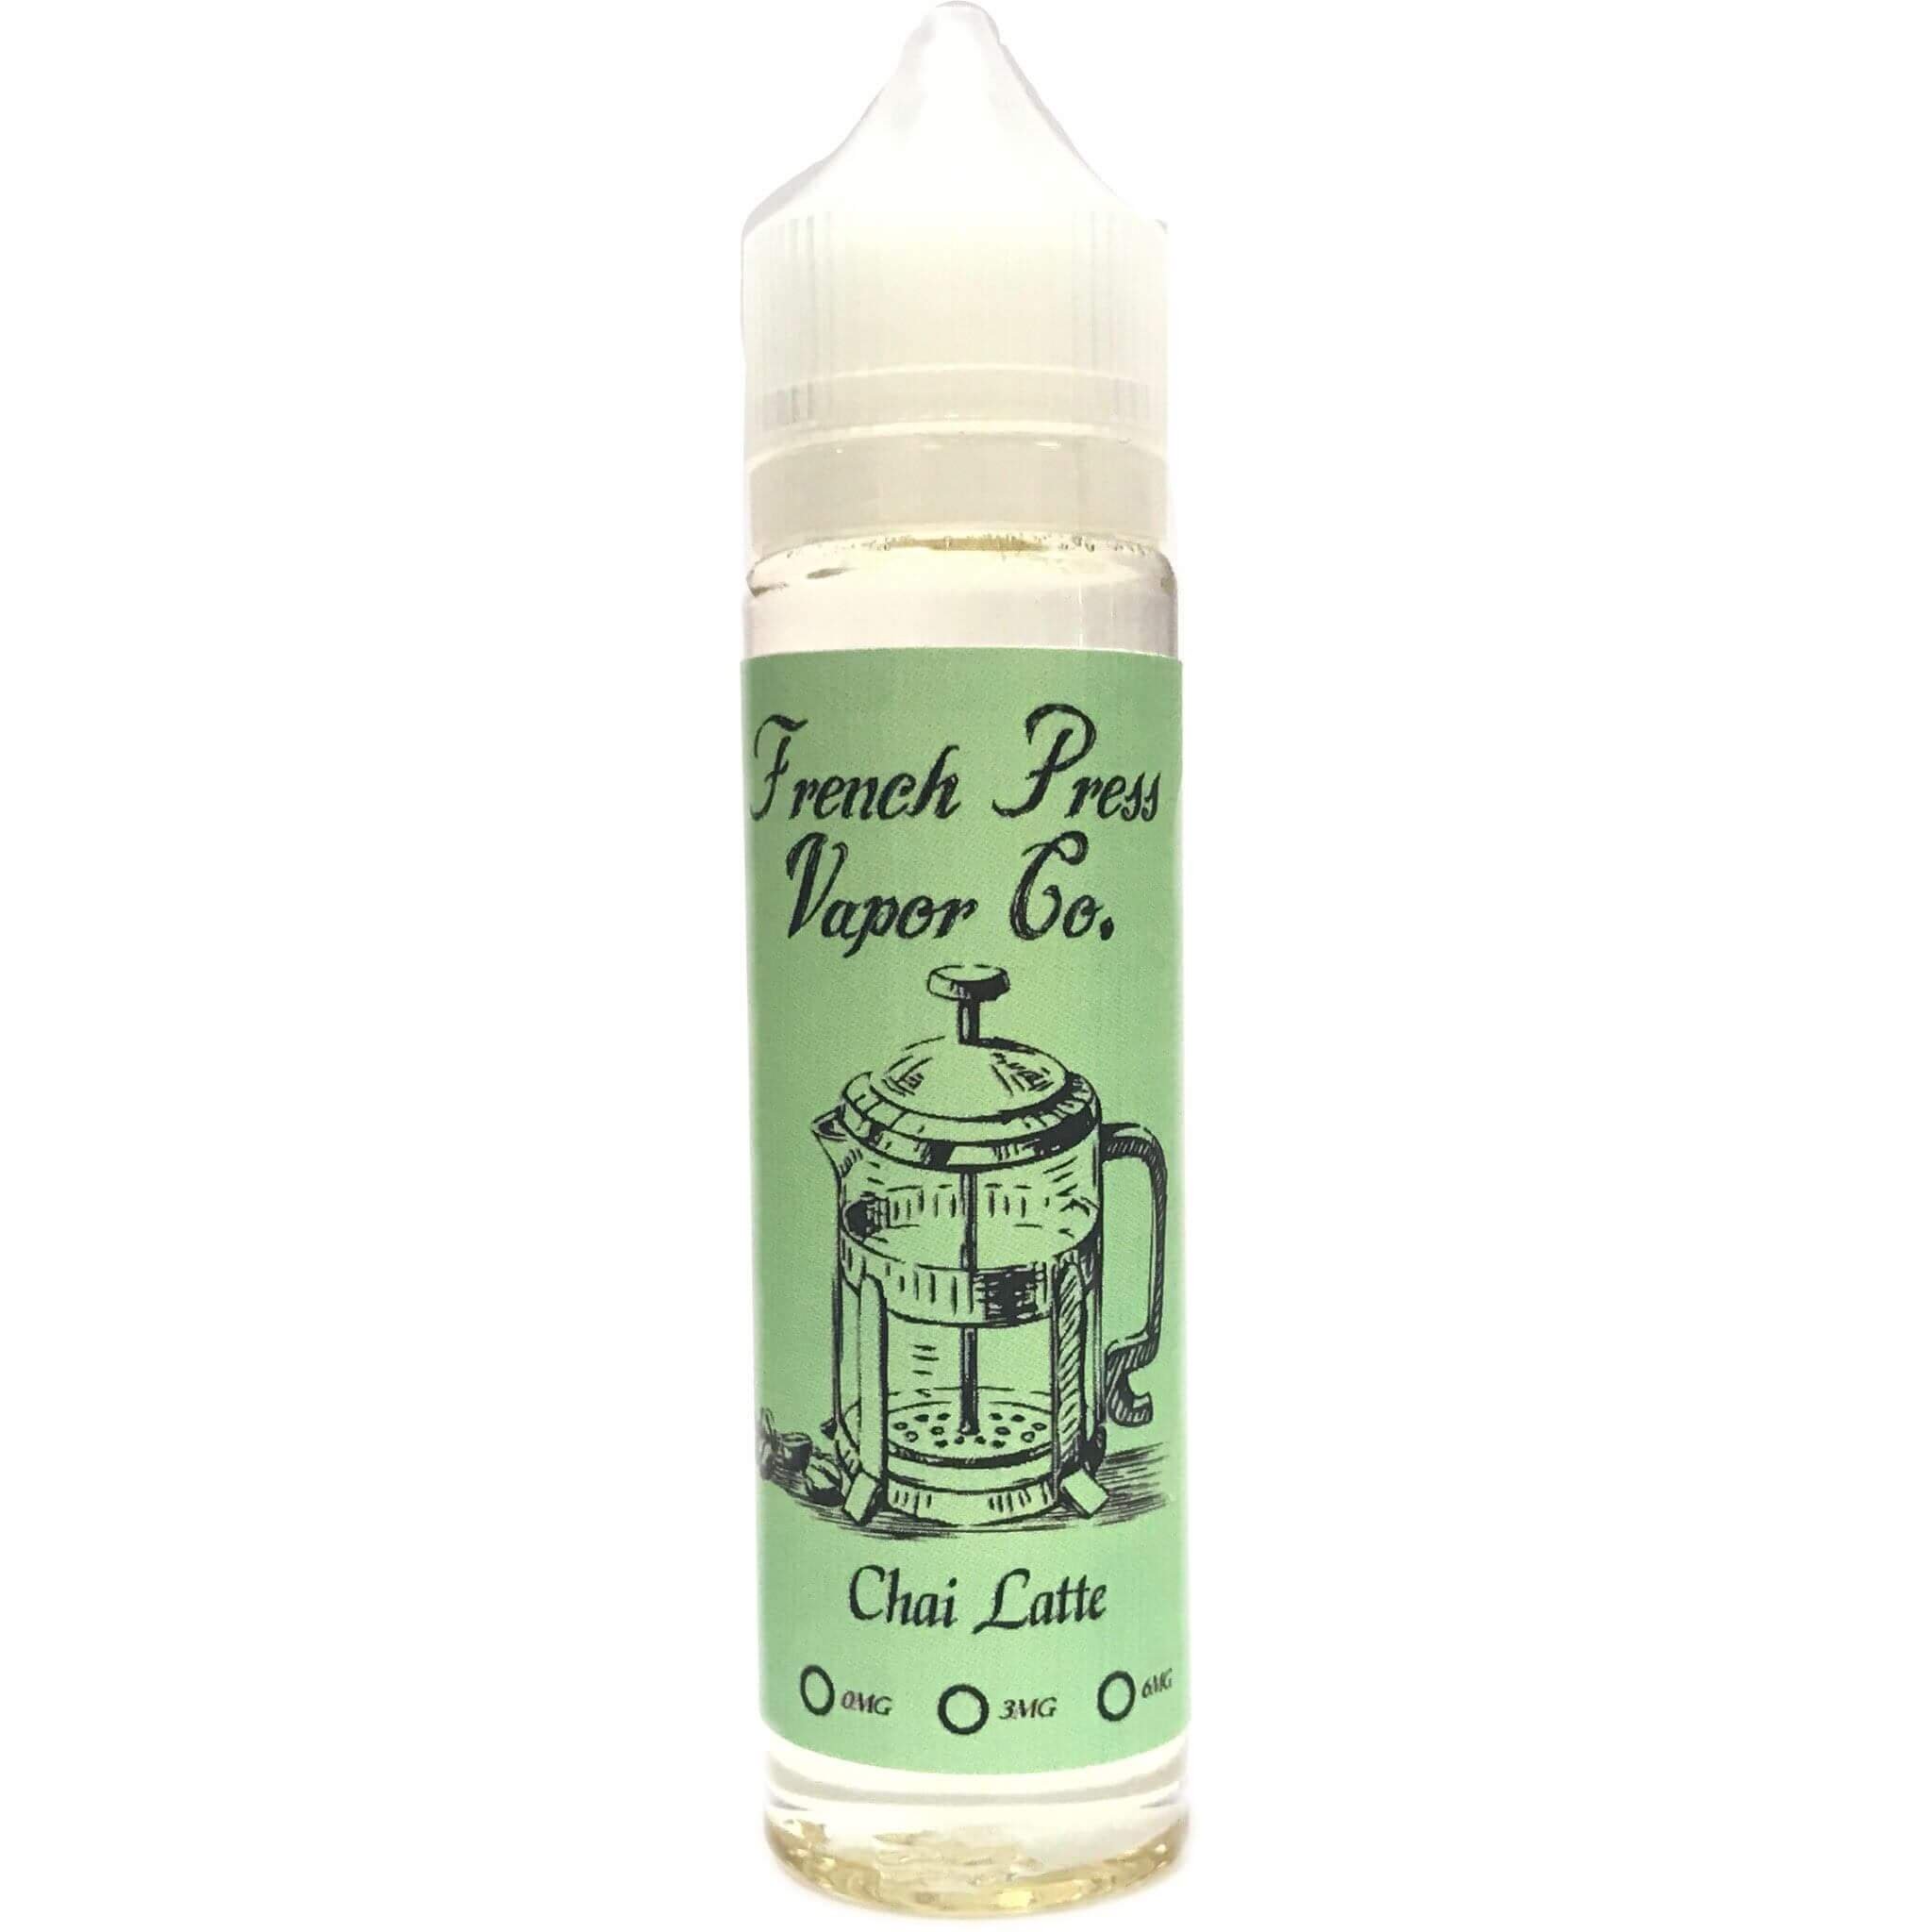 Chai Latte - French Press Vapor Co.